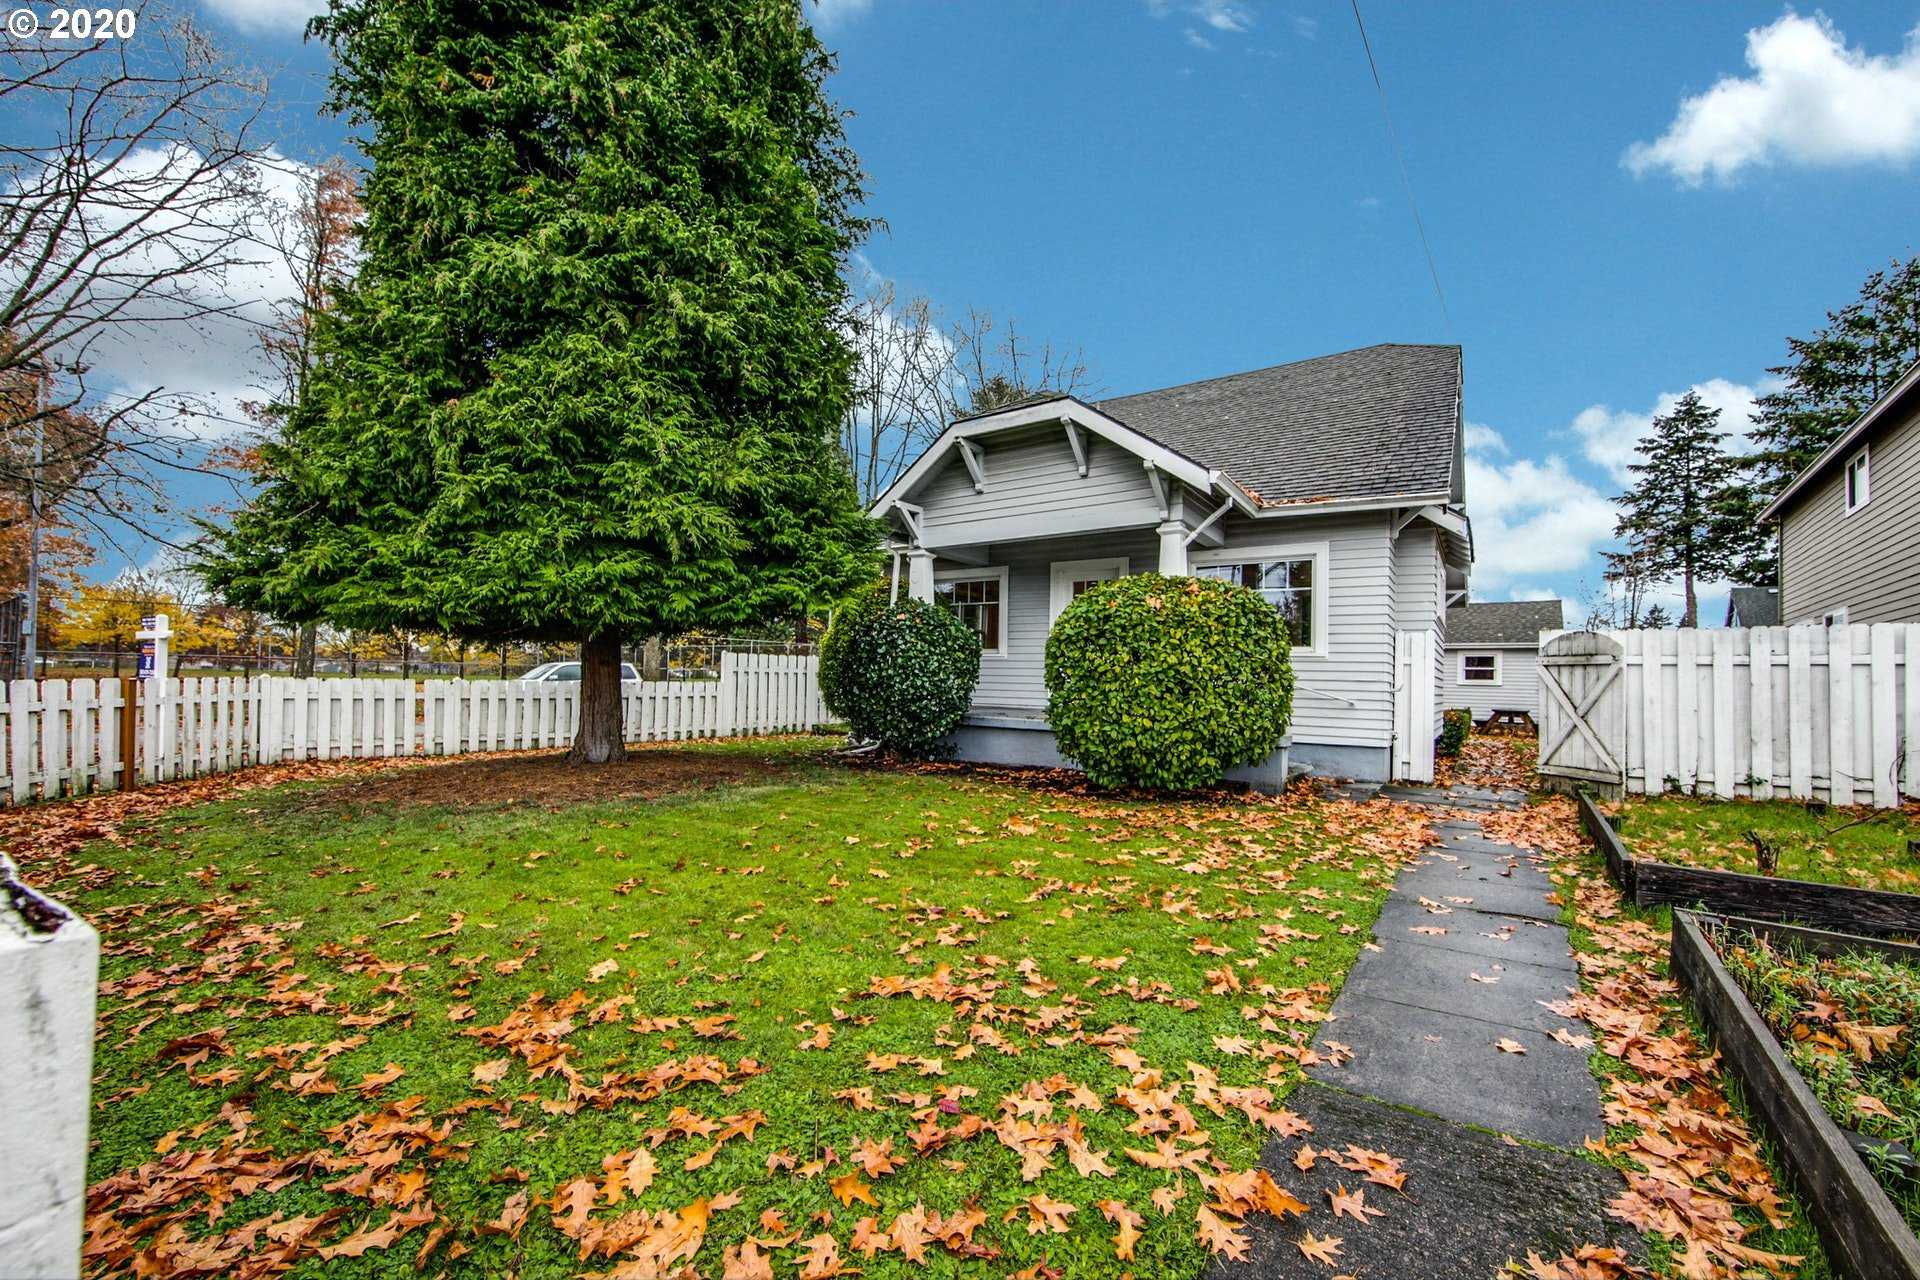 $350,000 - 5Br/3Ba -  for Sale in Lents, Portland